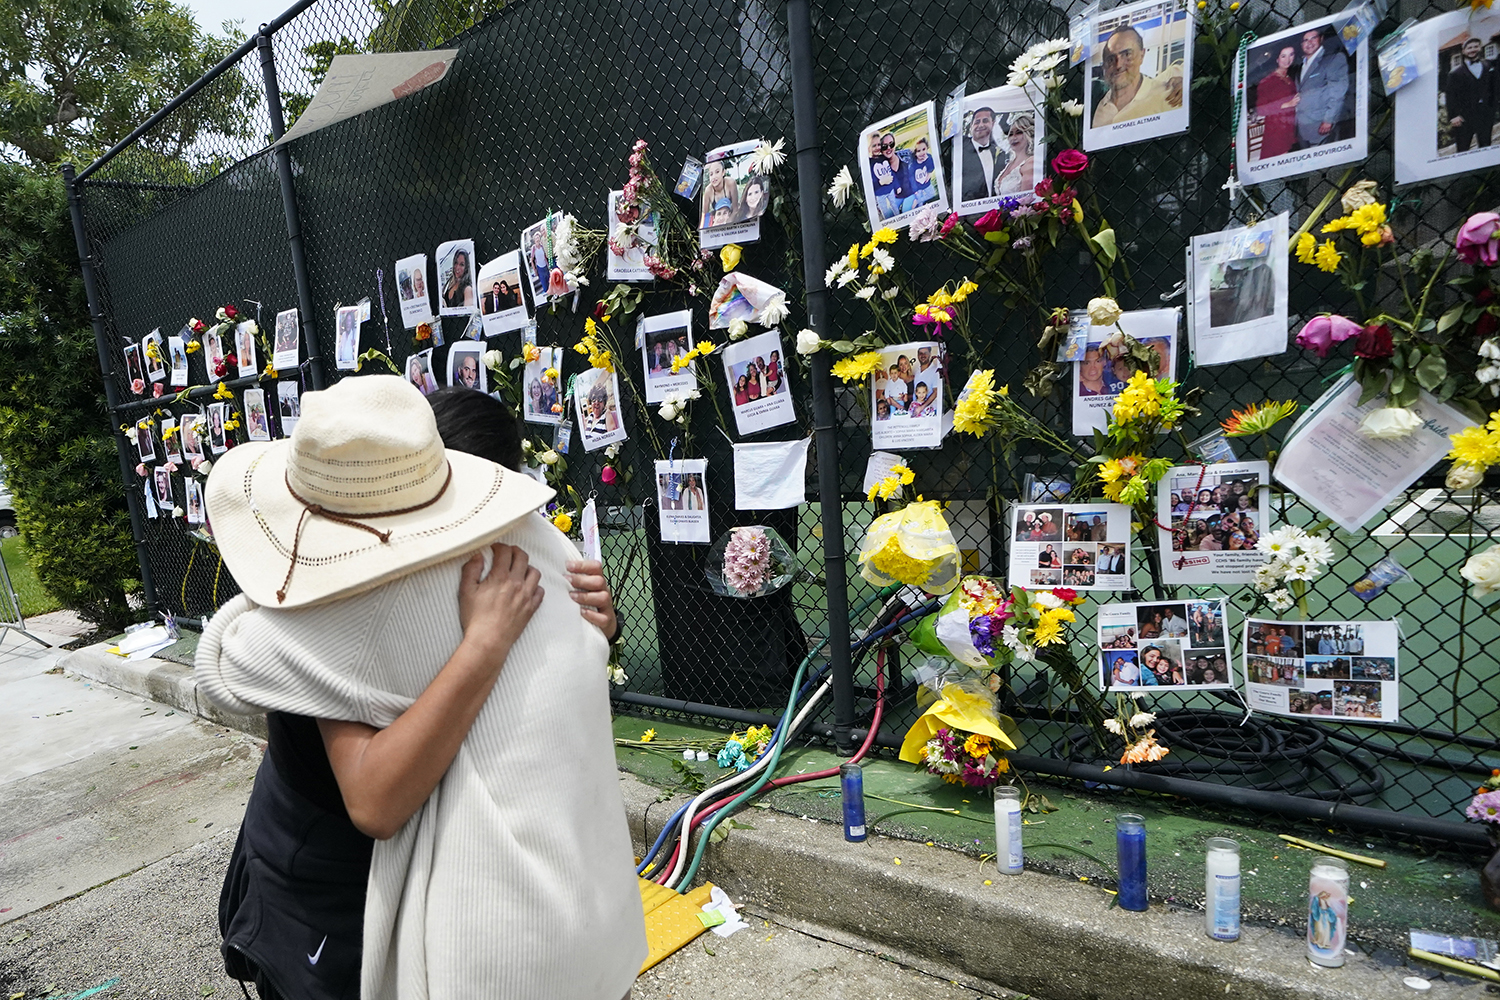 People embrace at a make-shift memorial outside St. Joseph Catholic Church, in Surfside, Fla., Monday, June 28, 2021, near the collapsed building for people still missing or dead. Many people were still unaccounted for after Thursday's fatal collapse. (AP Photo/Gerald Herbert)